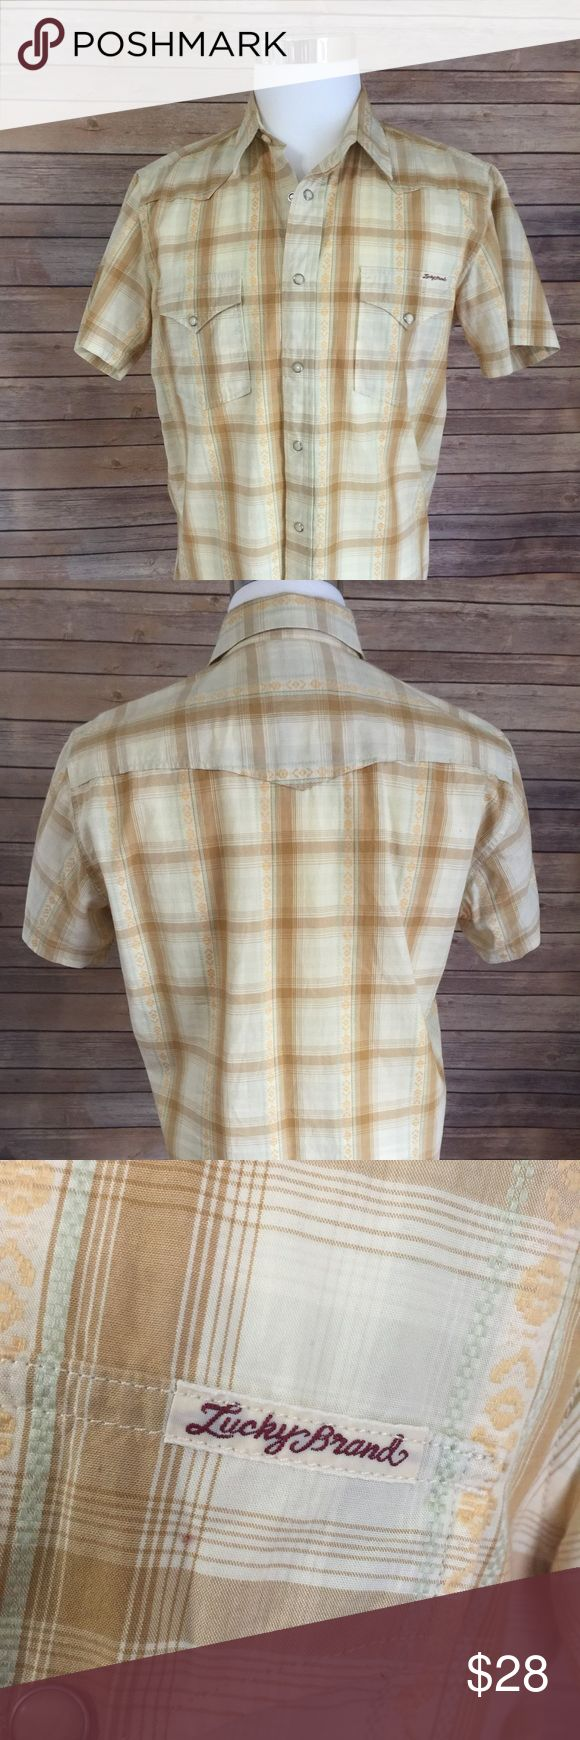 Lucky Brand Western Shirt Sz M Beige and Brown Short Sleeve Western Style Shirt With Snap Buttons Sz Medium Lucky Brand Like New condition 100% Cotton Lucky Brand Shirts Casual Button Down Shirts